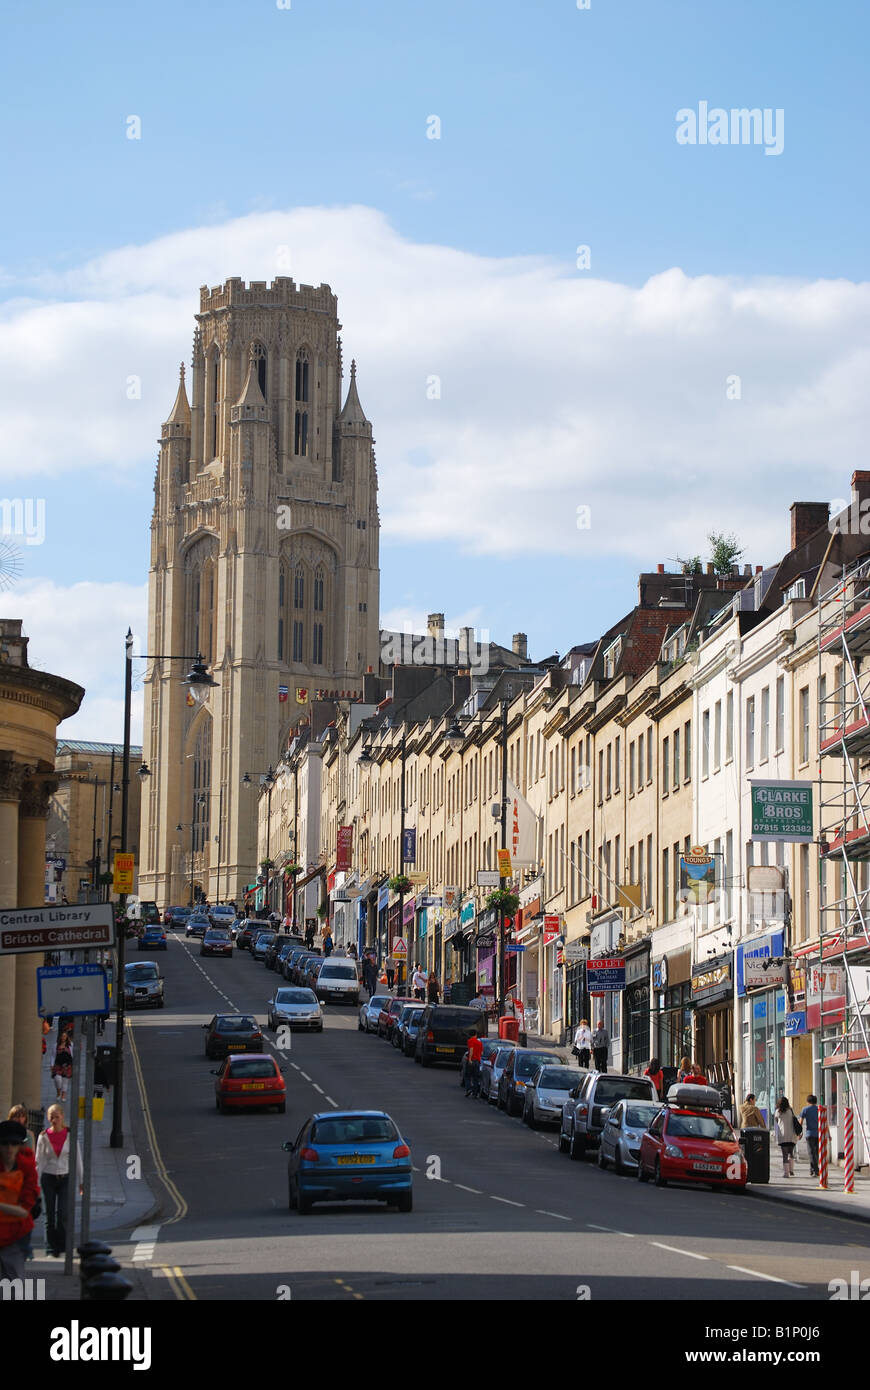 wills memorial building and park street the university of. Black Bedroom Furniture Sets. Home Design Ideas